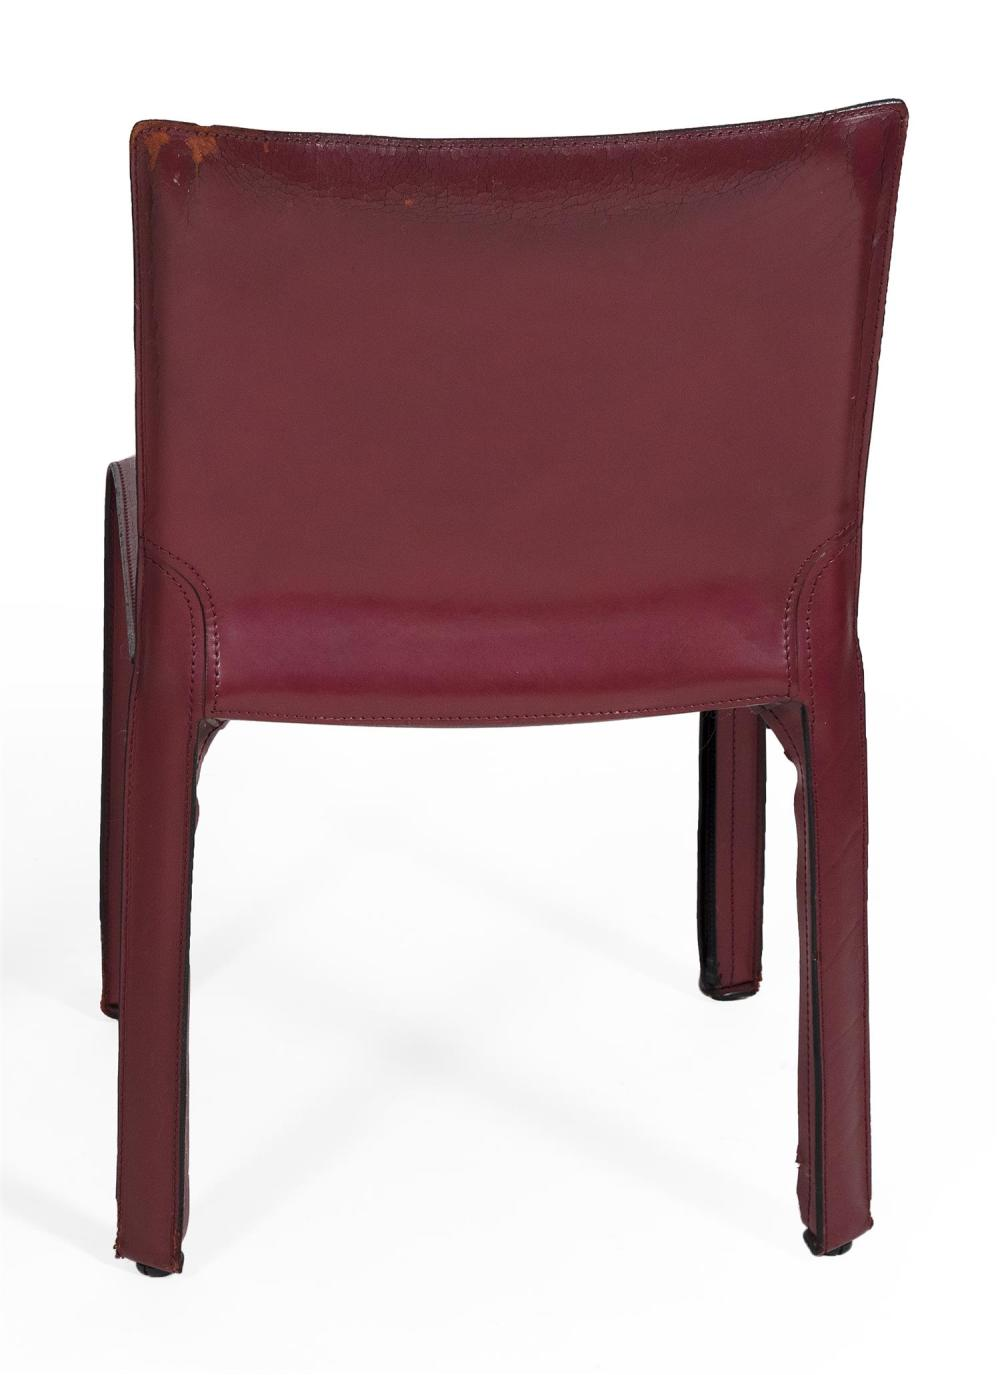 CASSINA T-4 CAB CHAIR BY MARIO BELLINI Plastic and steel frame covered in a zippered bordeaux red saddle leather skin. Signed on und...